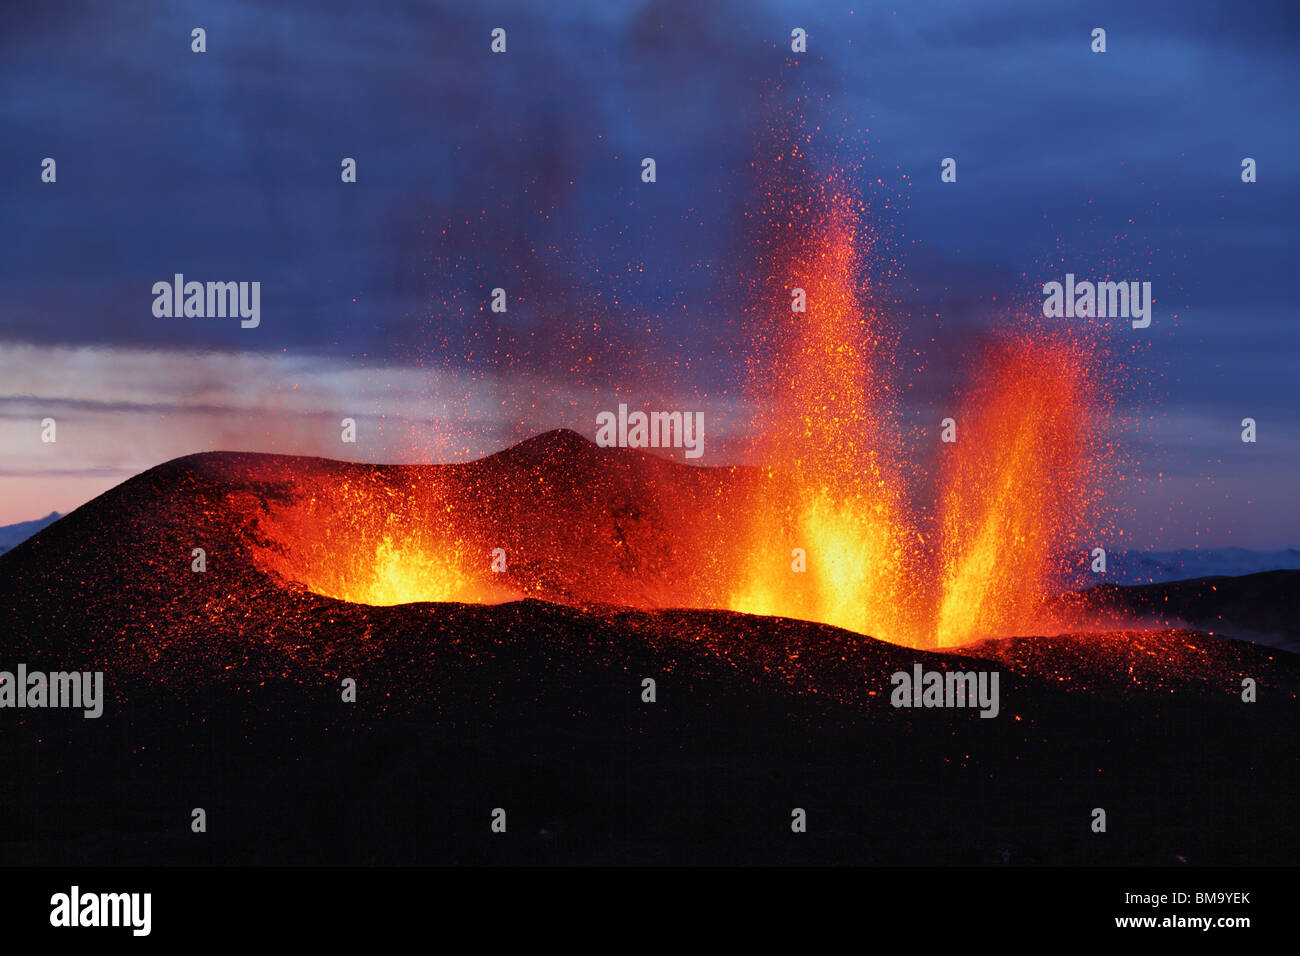 Molten lava erupts from Eyjafjallajokull, Fimmvorduhals, Iceland - Stock Image